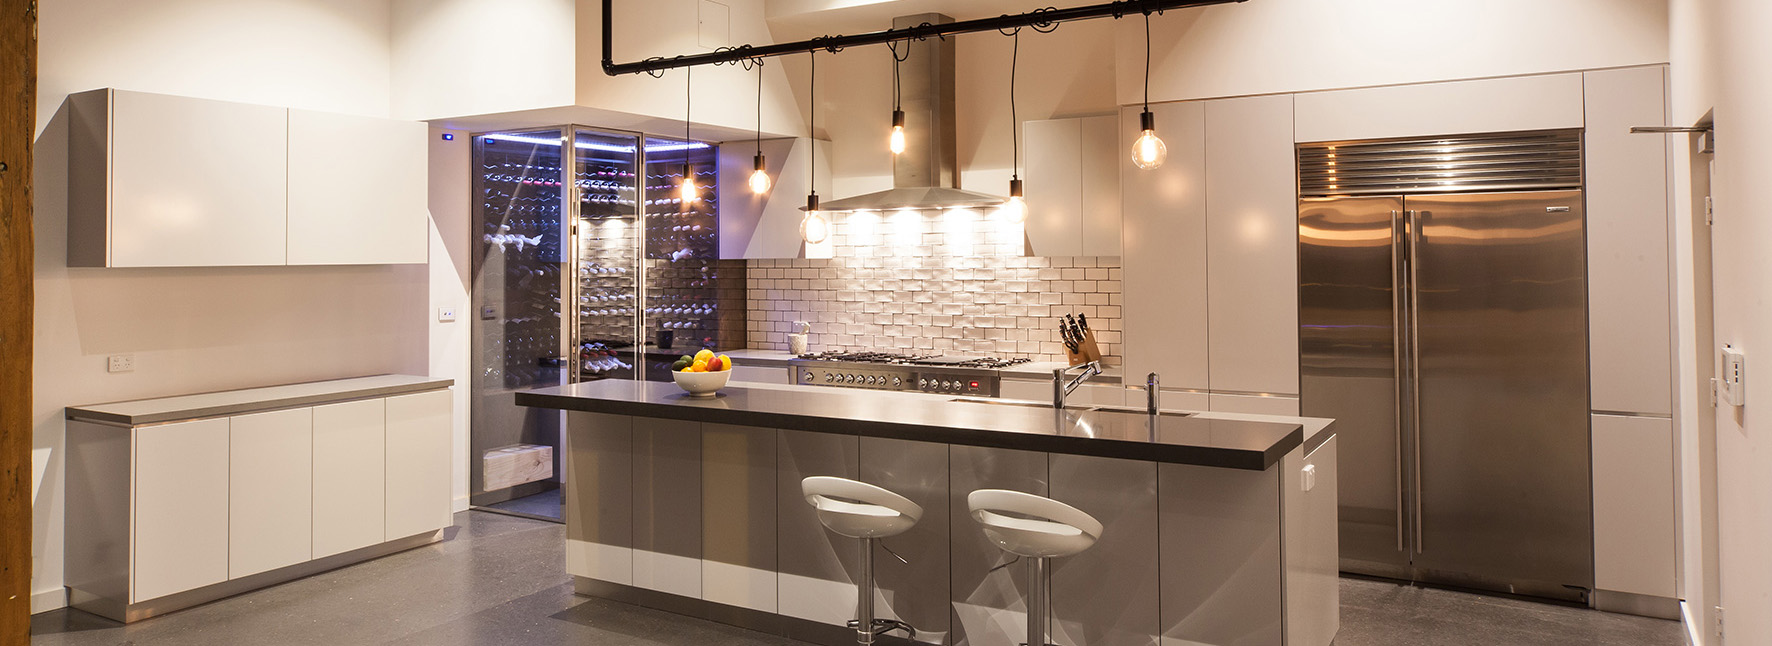 Active Kitchens & Joinery wins 2015 HIA Kitchen of the Year